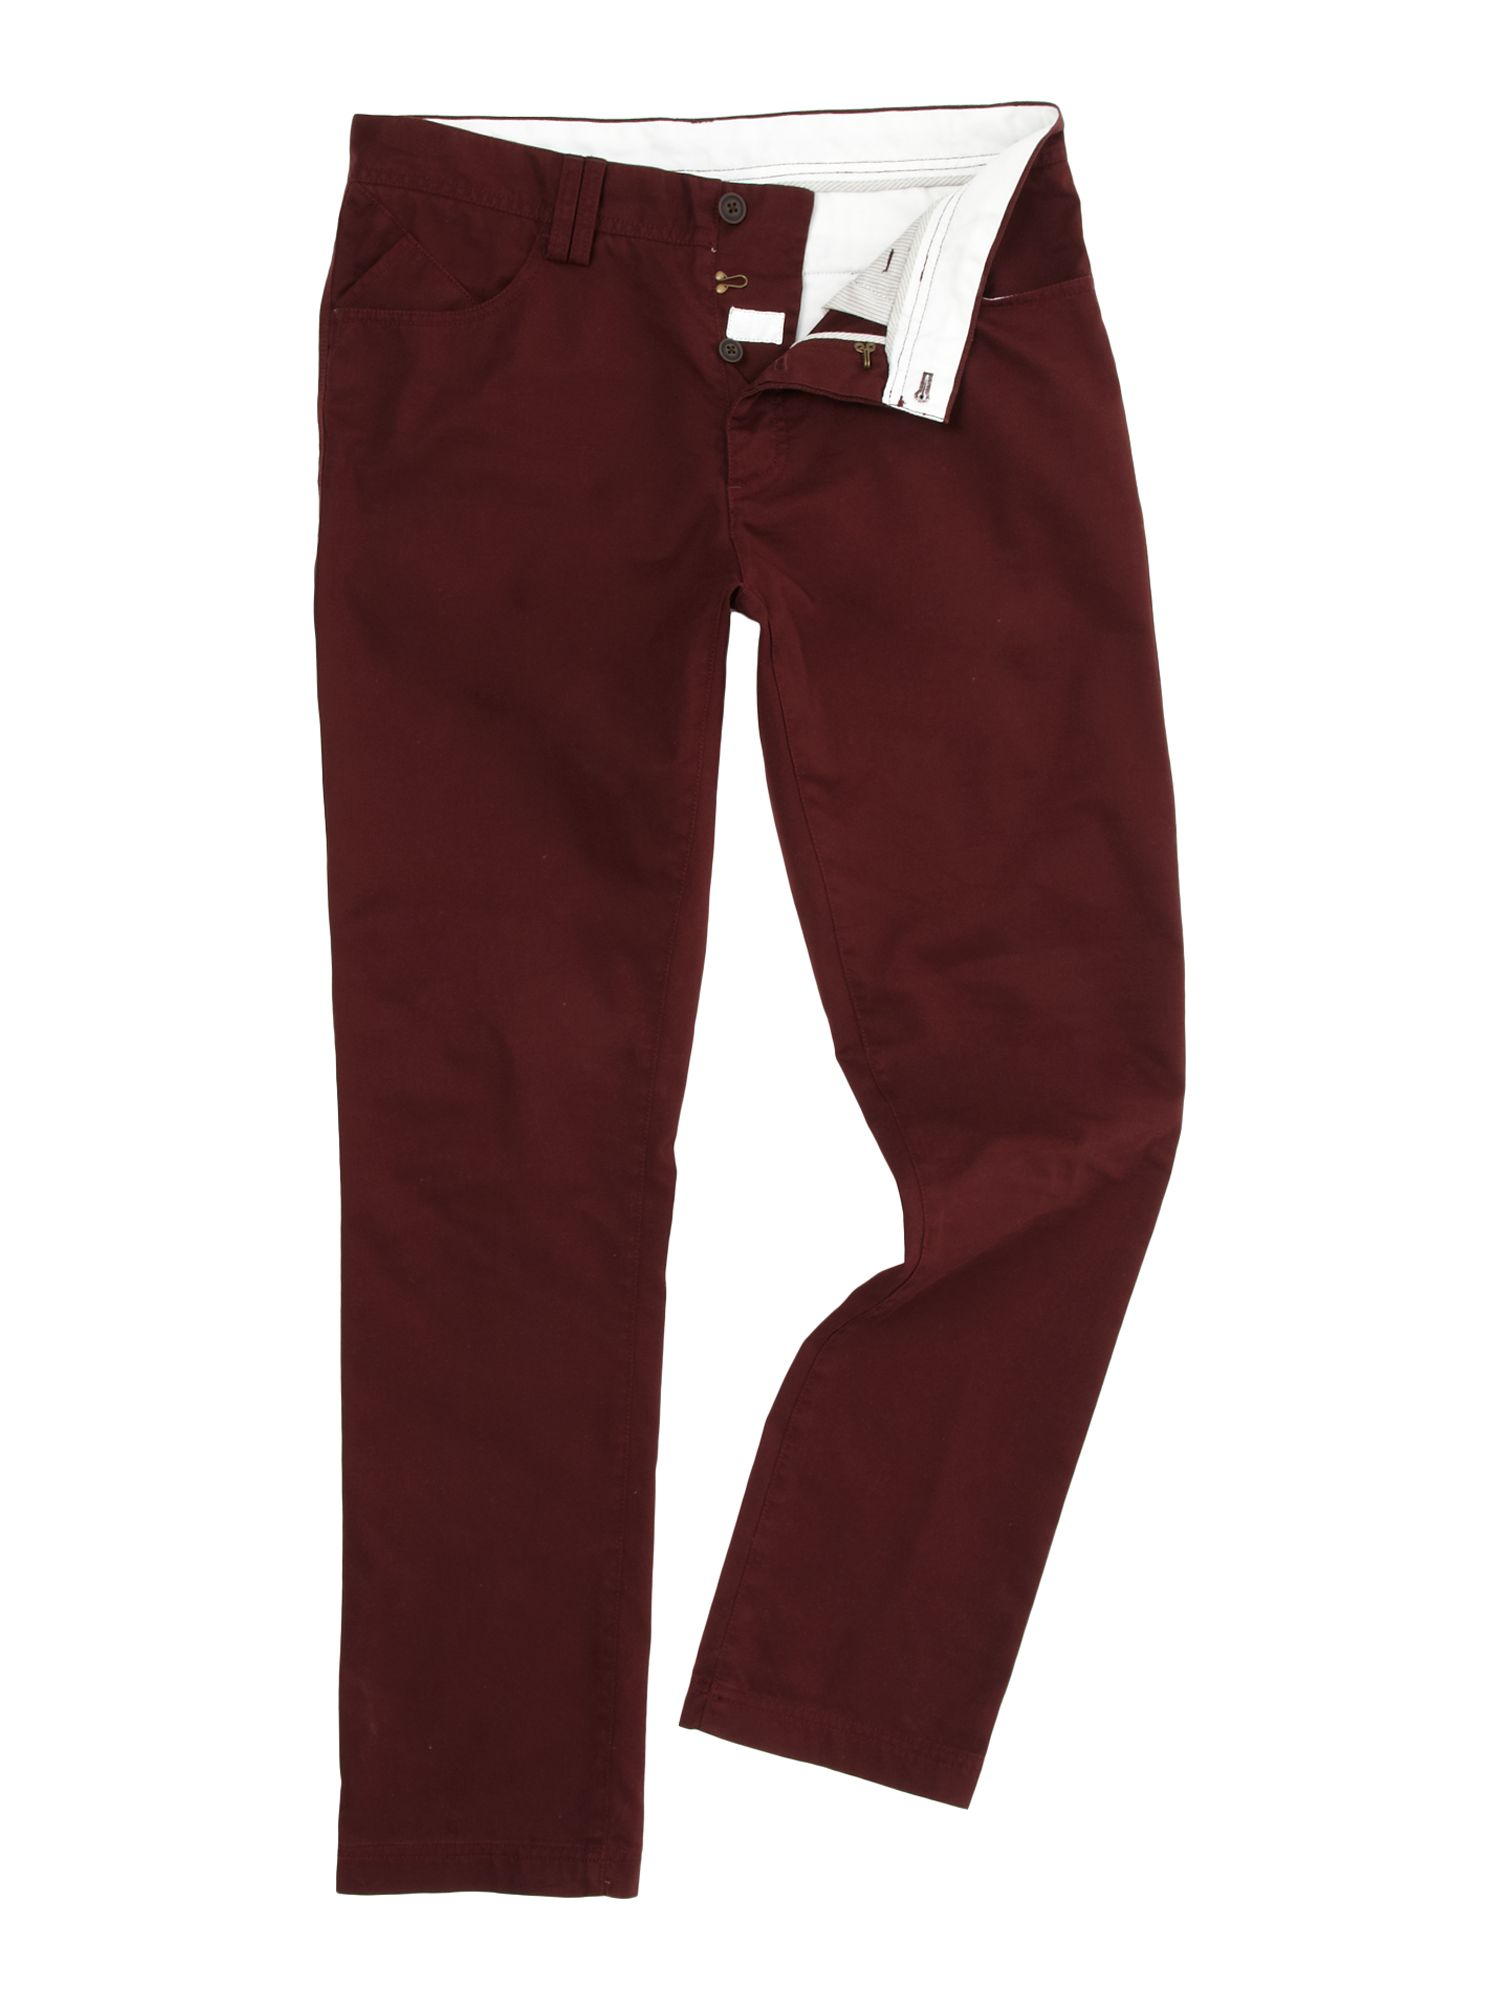 Marlon tailored chinos